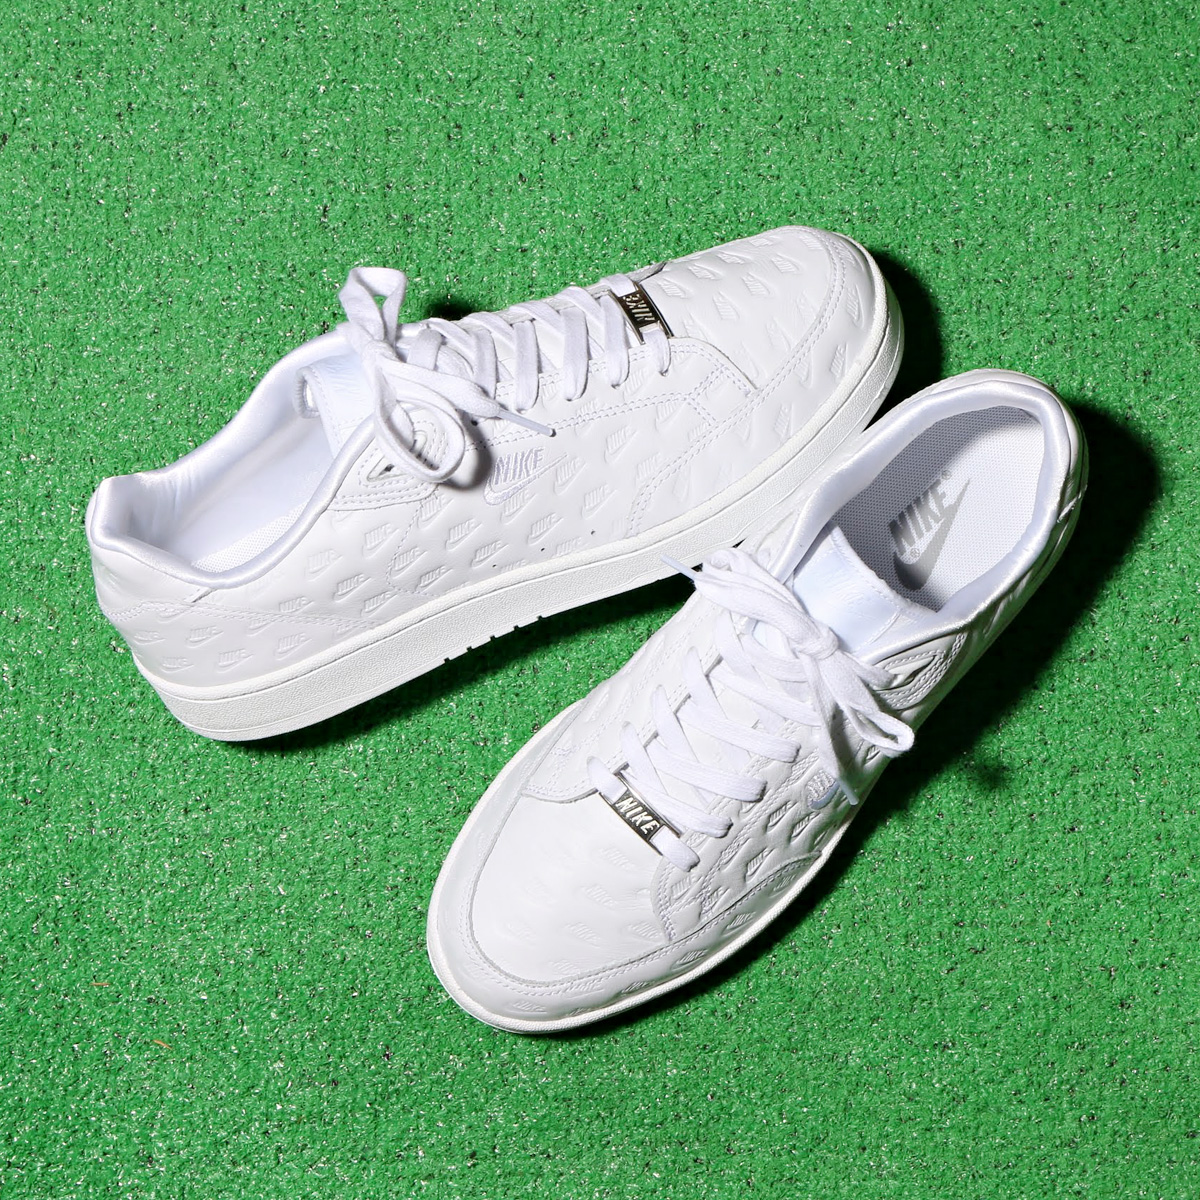 NIKE GRANDSTAND II PNCL(ナイキ グランド スタンド 2 ピナクル)(WHITE/WHITE-MATTE SILVER-MATTE SILVER)18SP-I